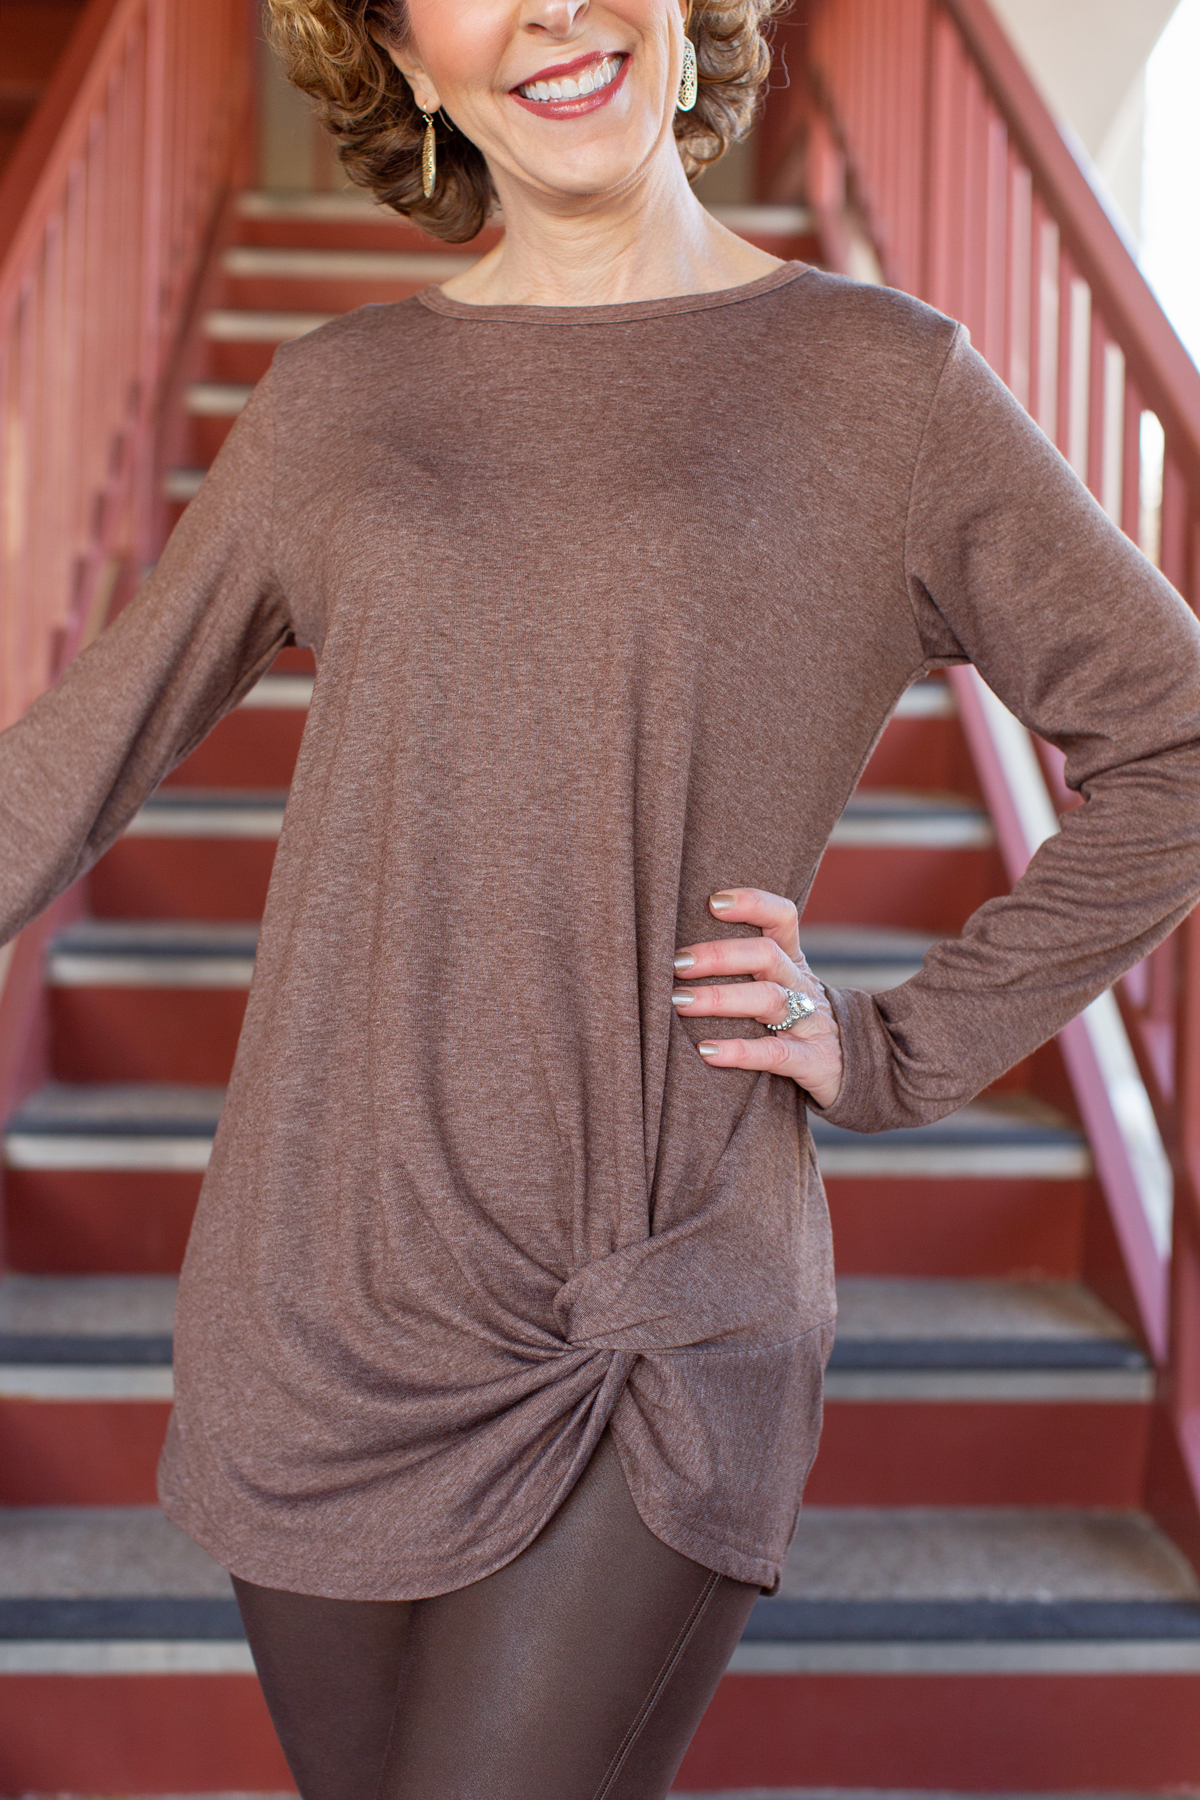 woman wearing brown tunic and leggings standing on a staircase